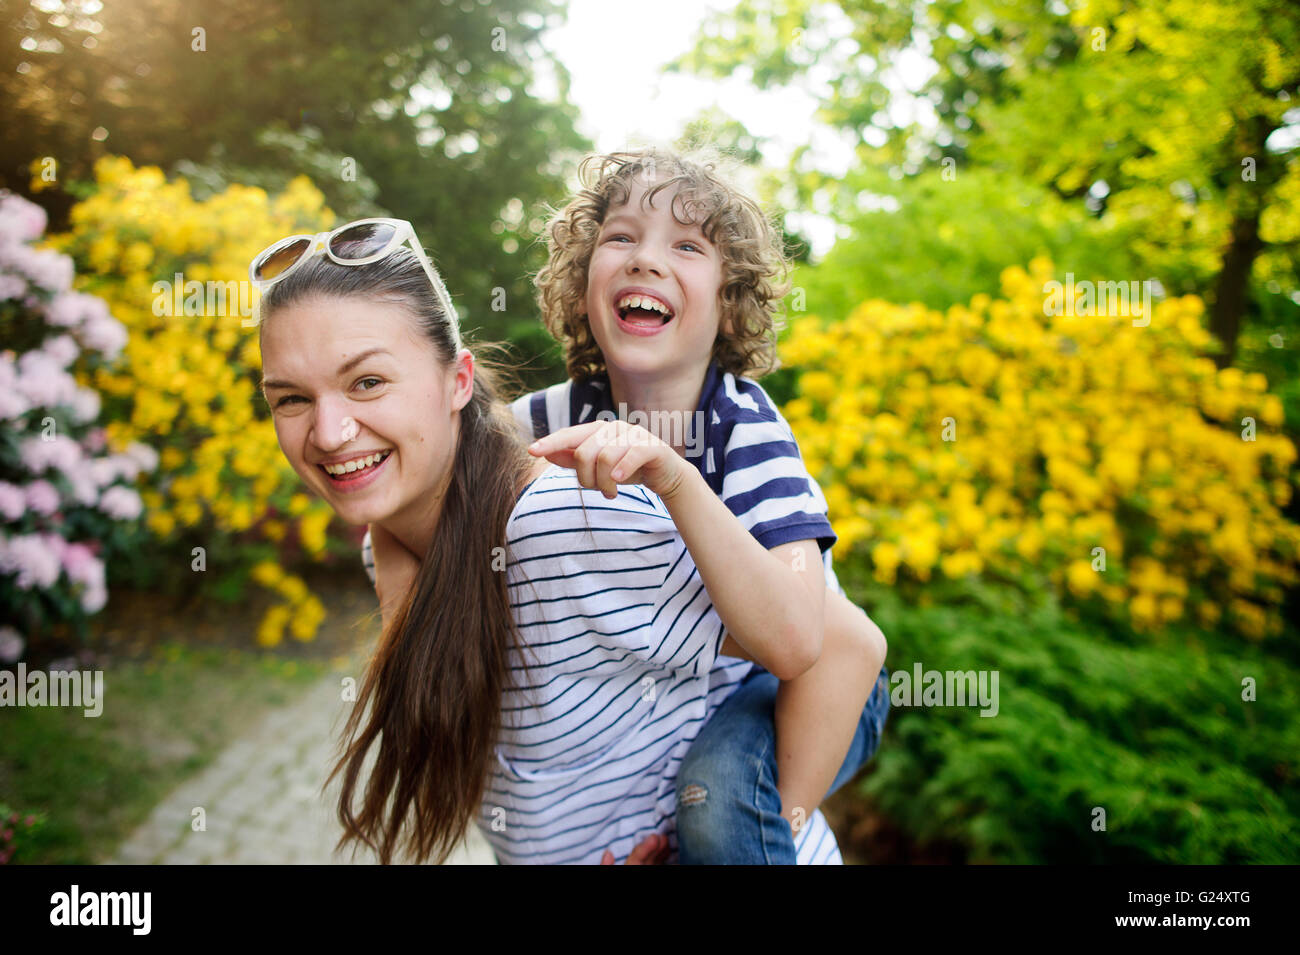 Woman with her son on a walk in the park - Stock Image